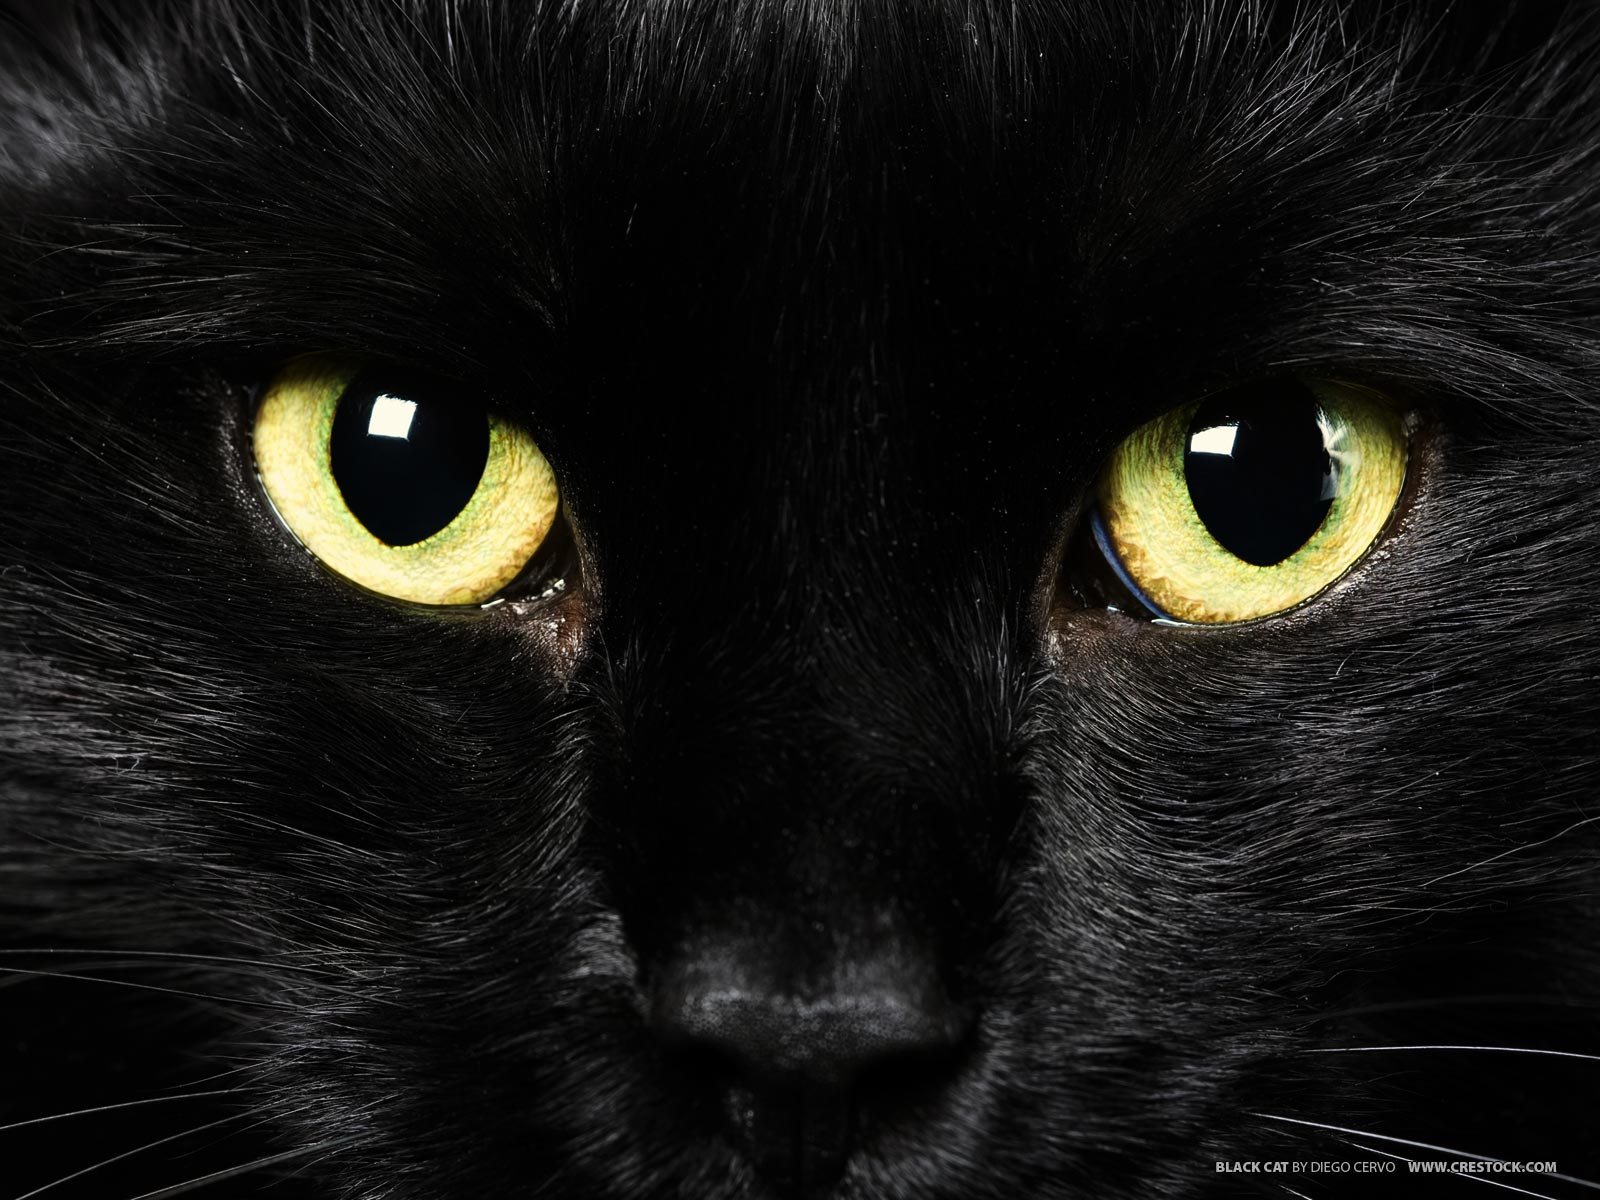 Welcome To My Blog Black Cats Symbol Of Good Luck Or Bad Luck